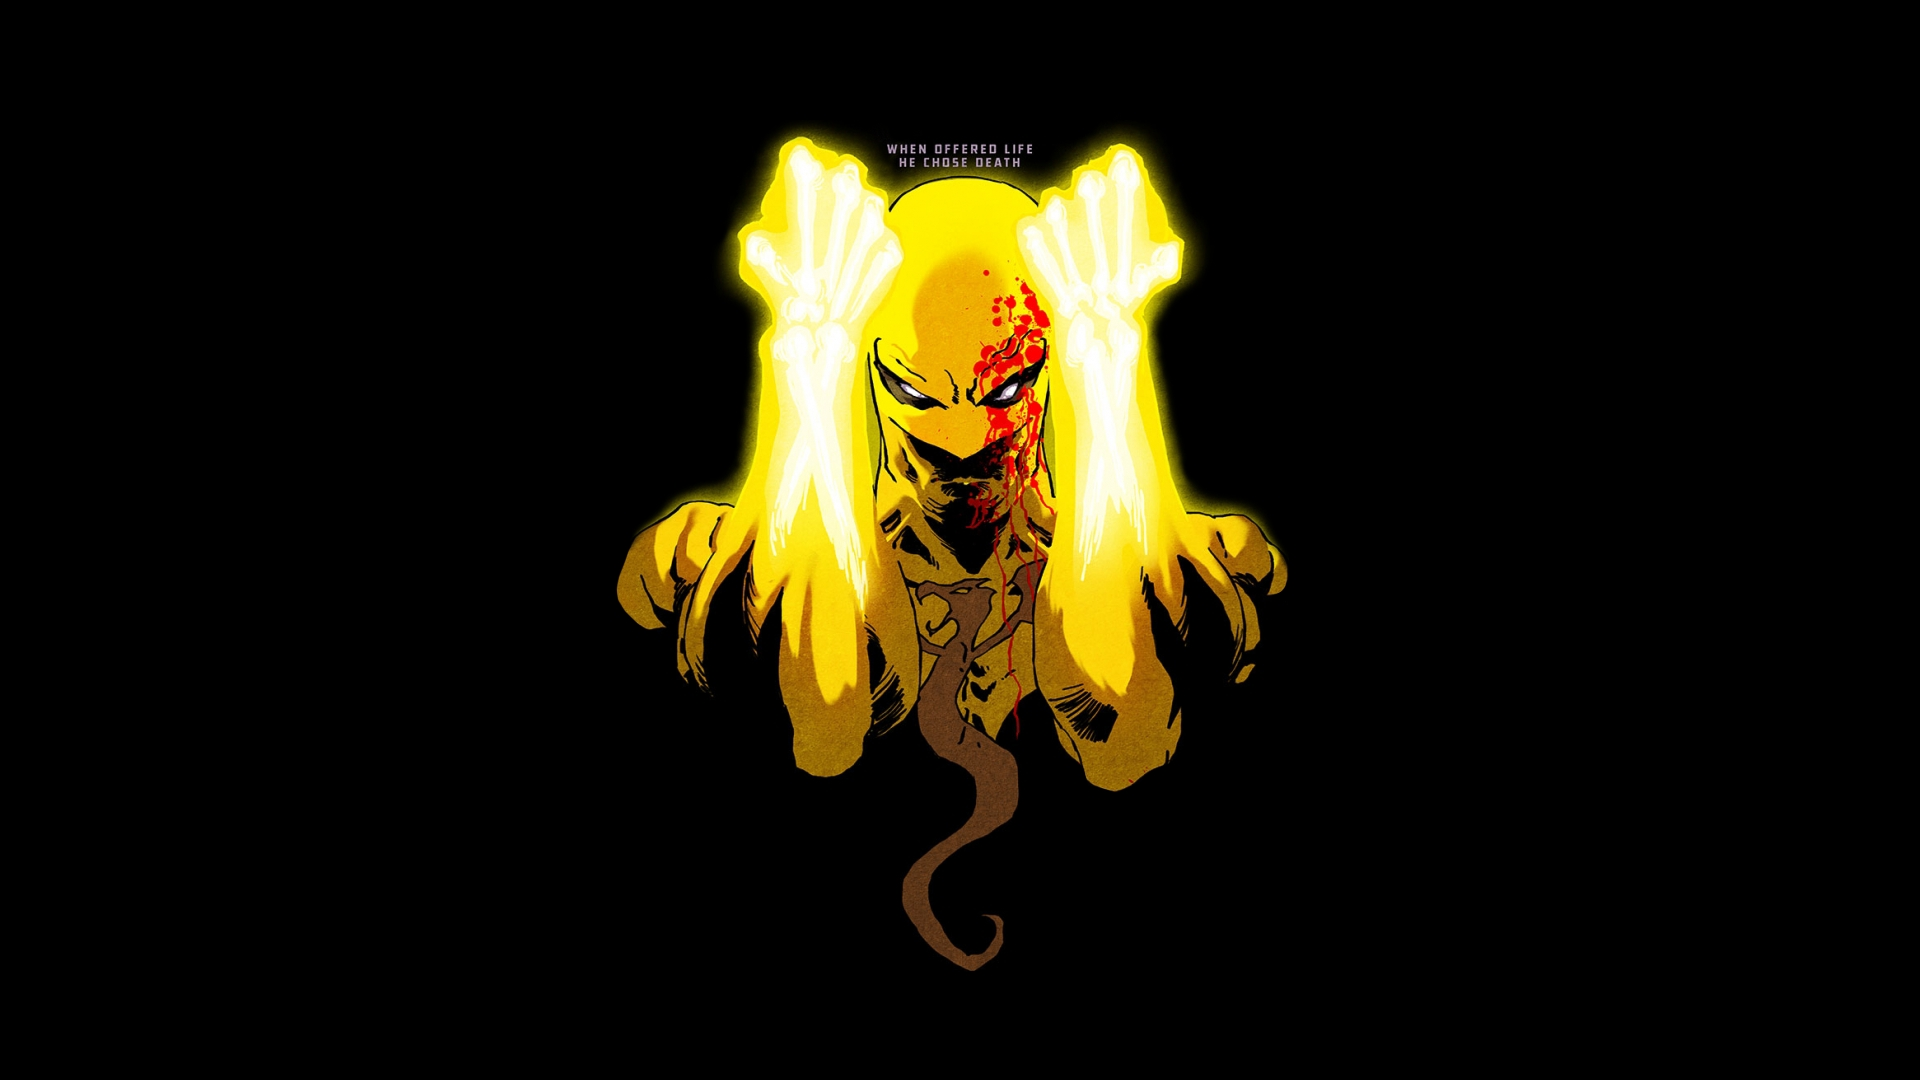 comics iron fist: the living weapon wallpaper  resolution